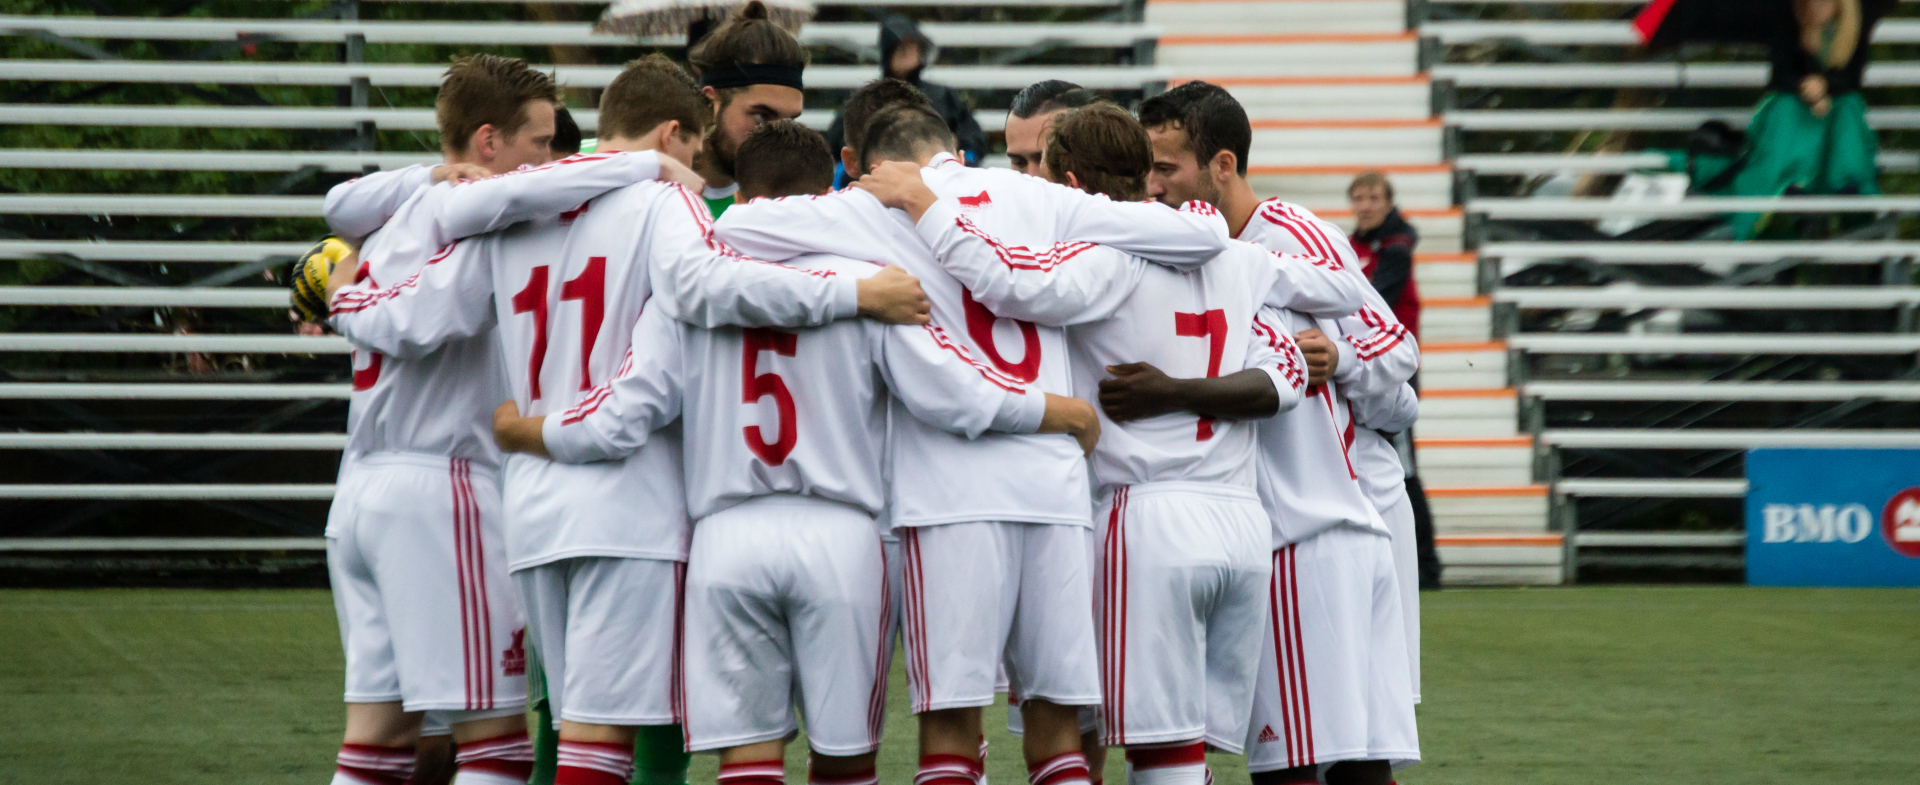 Sea-Hawks All Set for Playoffs